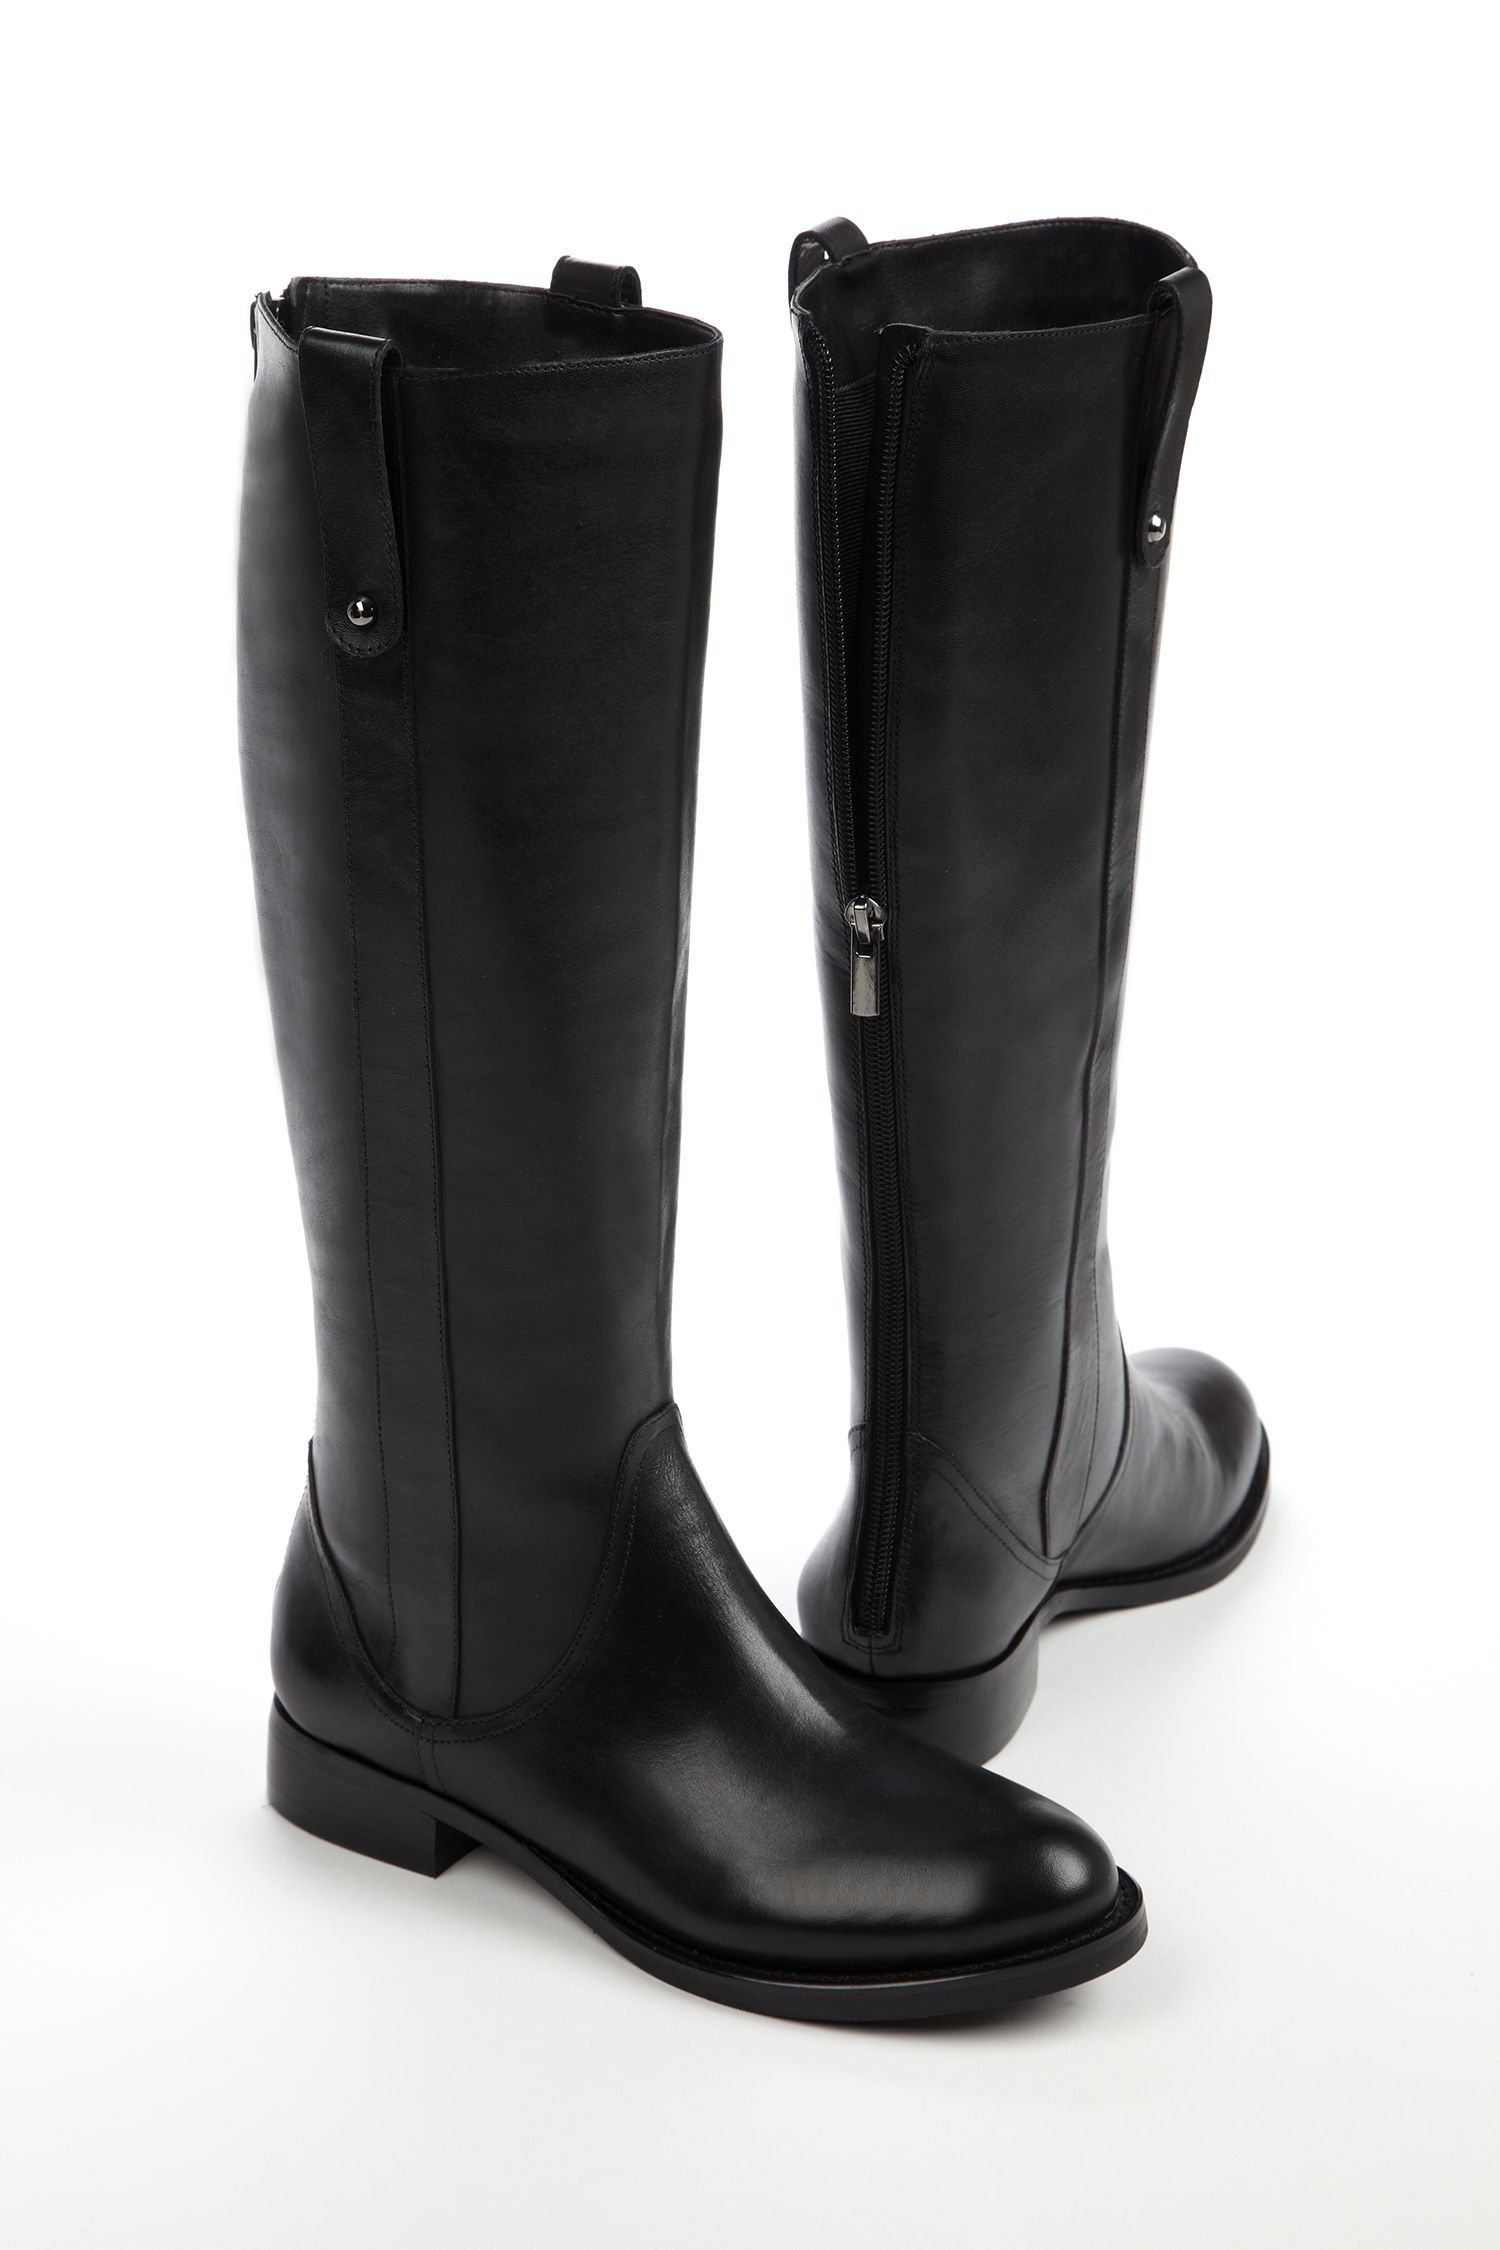 Boots, Womens leather knee high boots